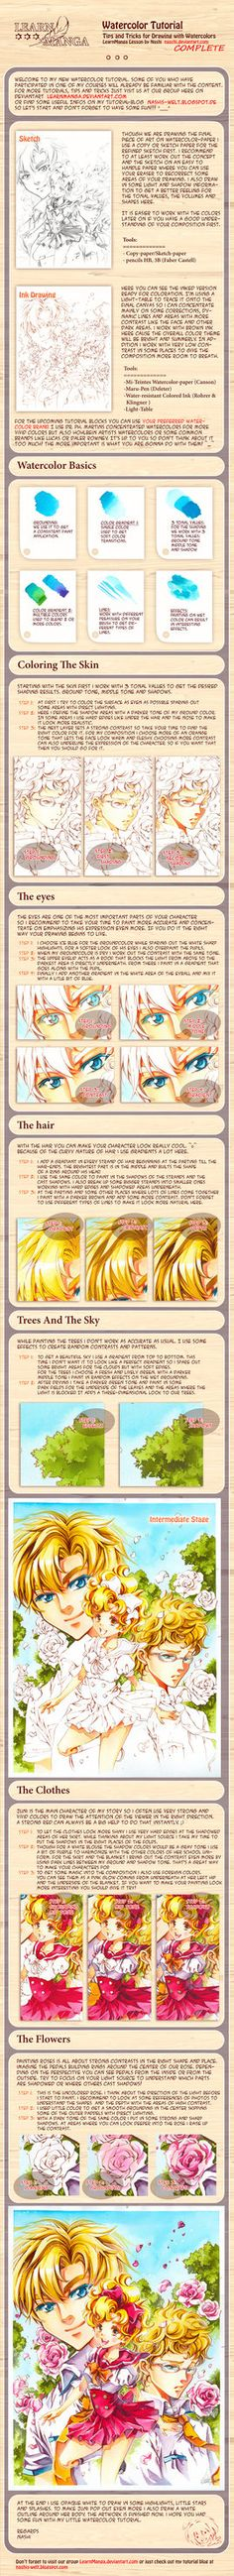 My Tutorial FOolder My MangaTutorial-BlogNashi on Facebook If you want to learn to draw manga with us join our great place here on DA Yoosh i'm finally finished with the translation so here is my u...